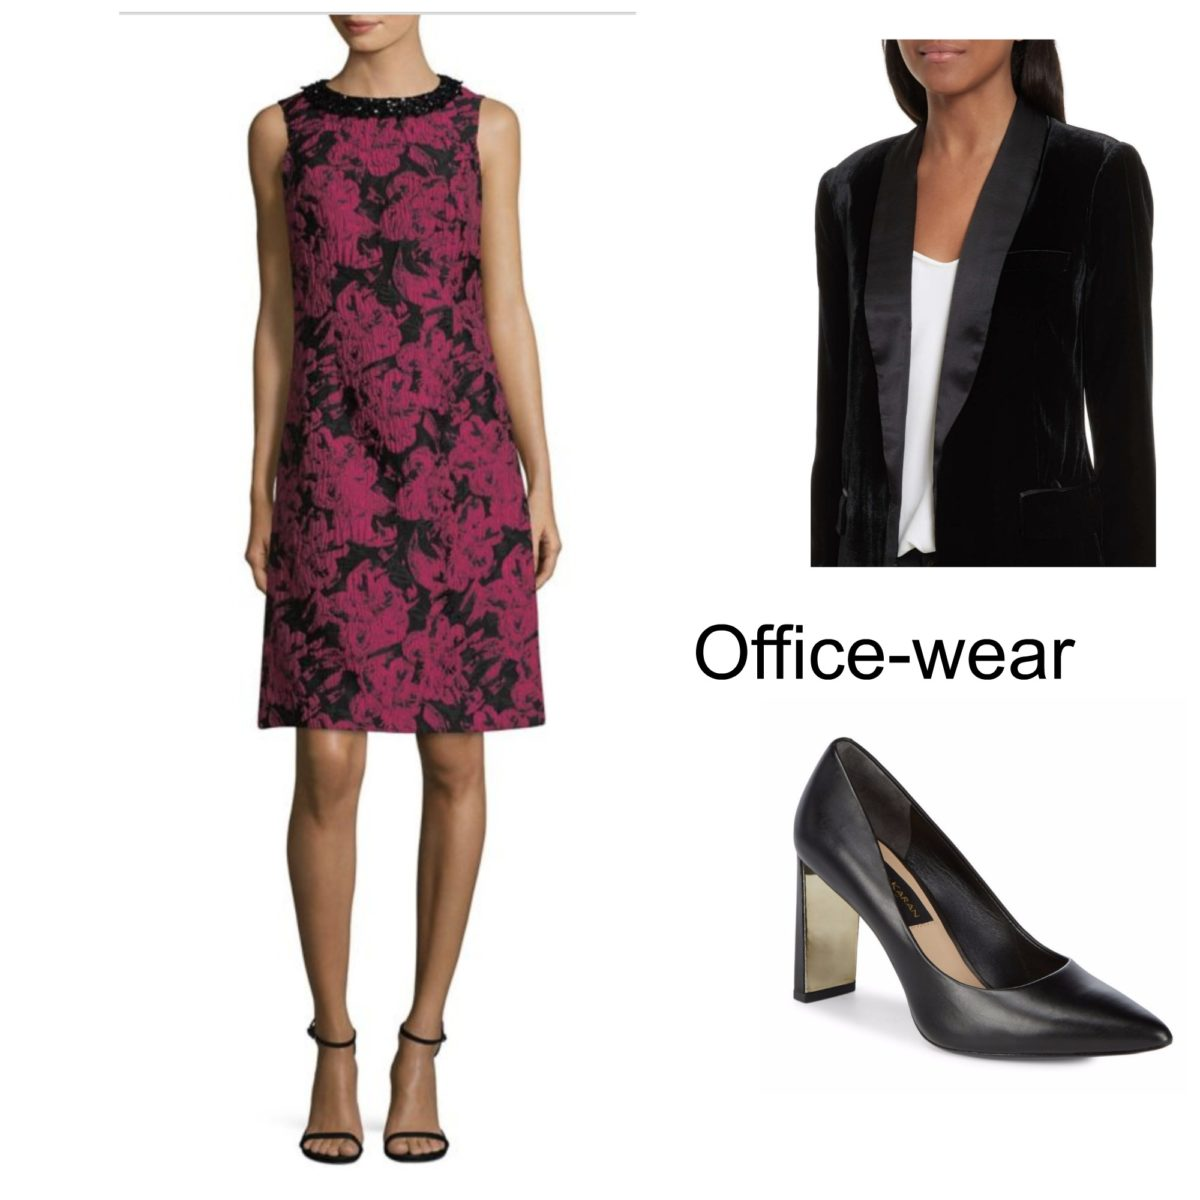 when you think office wear vs evening wear hopefully two different images come to mind however everyones situations are unique so lets just talk